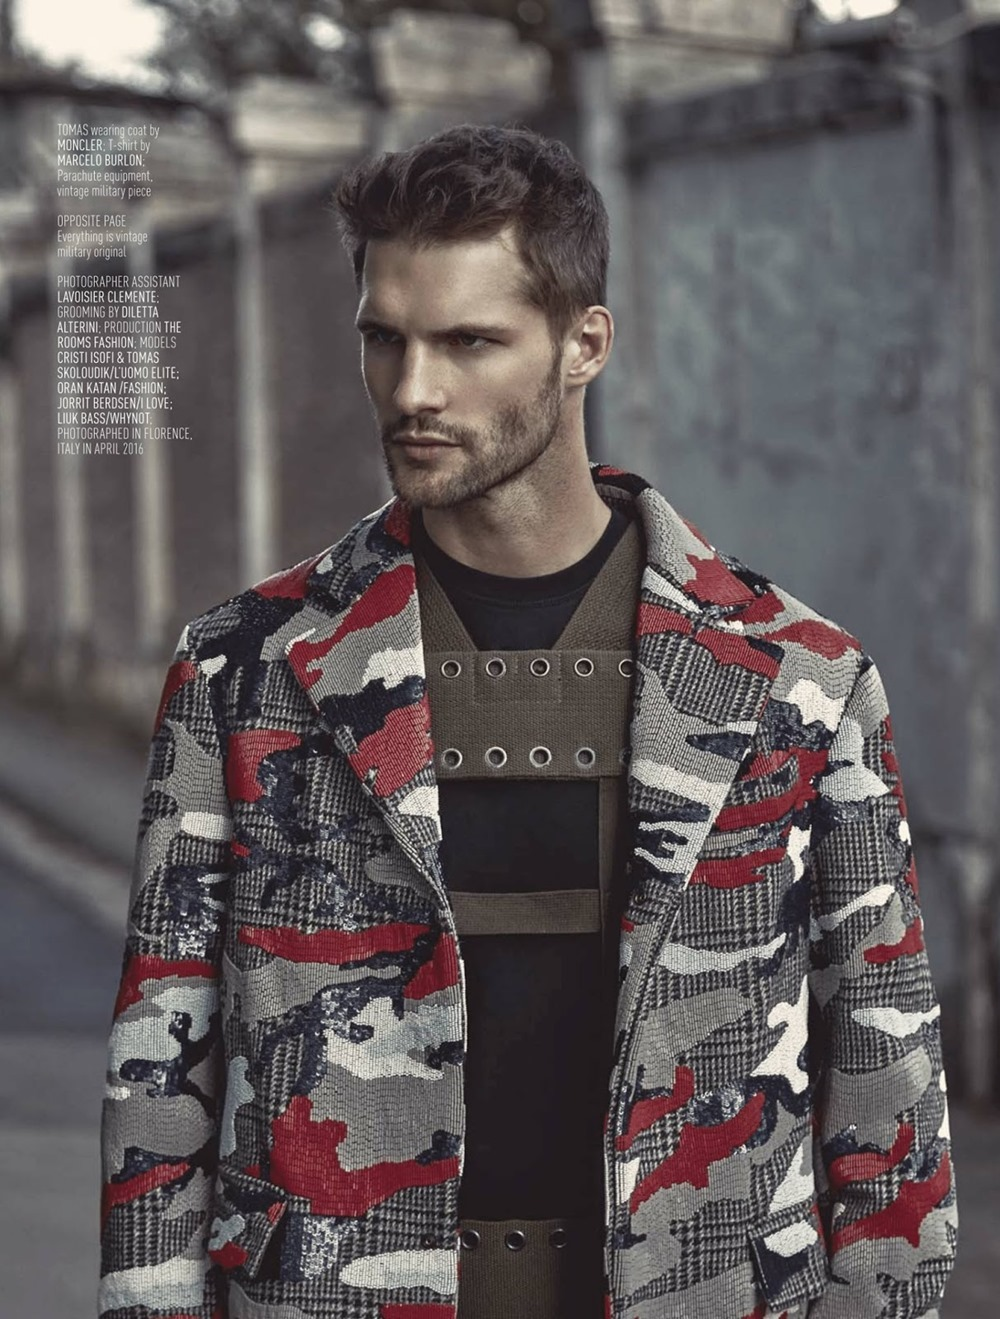 AUGUST MAN MALAYSIA Contemplation By Greg Swales Image